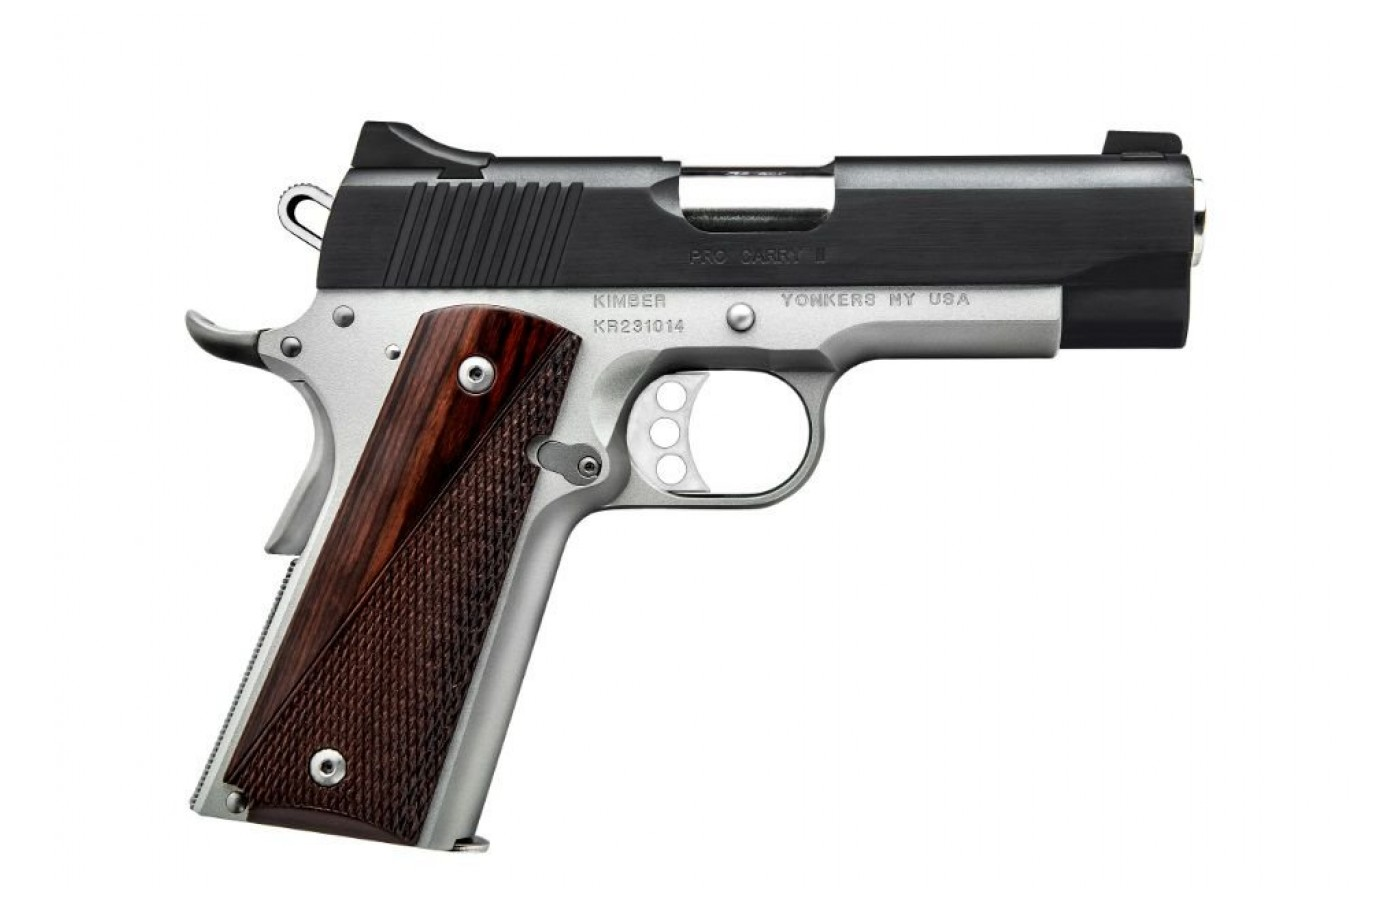 An alloy frame makes the pistol light and simple to handle.